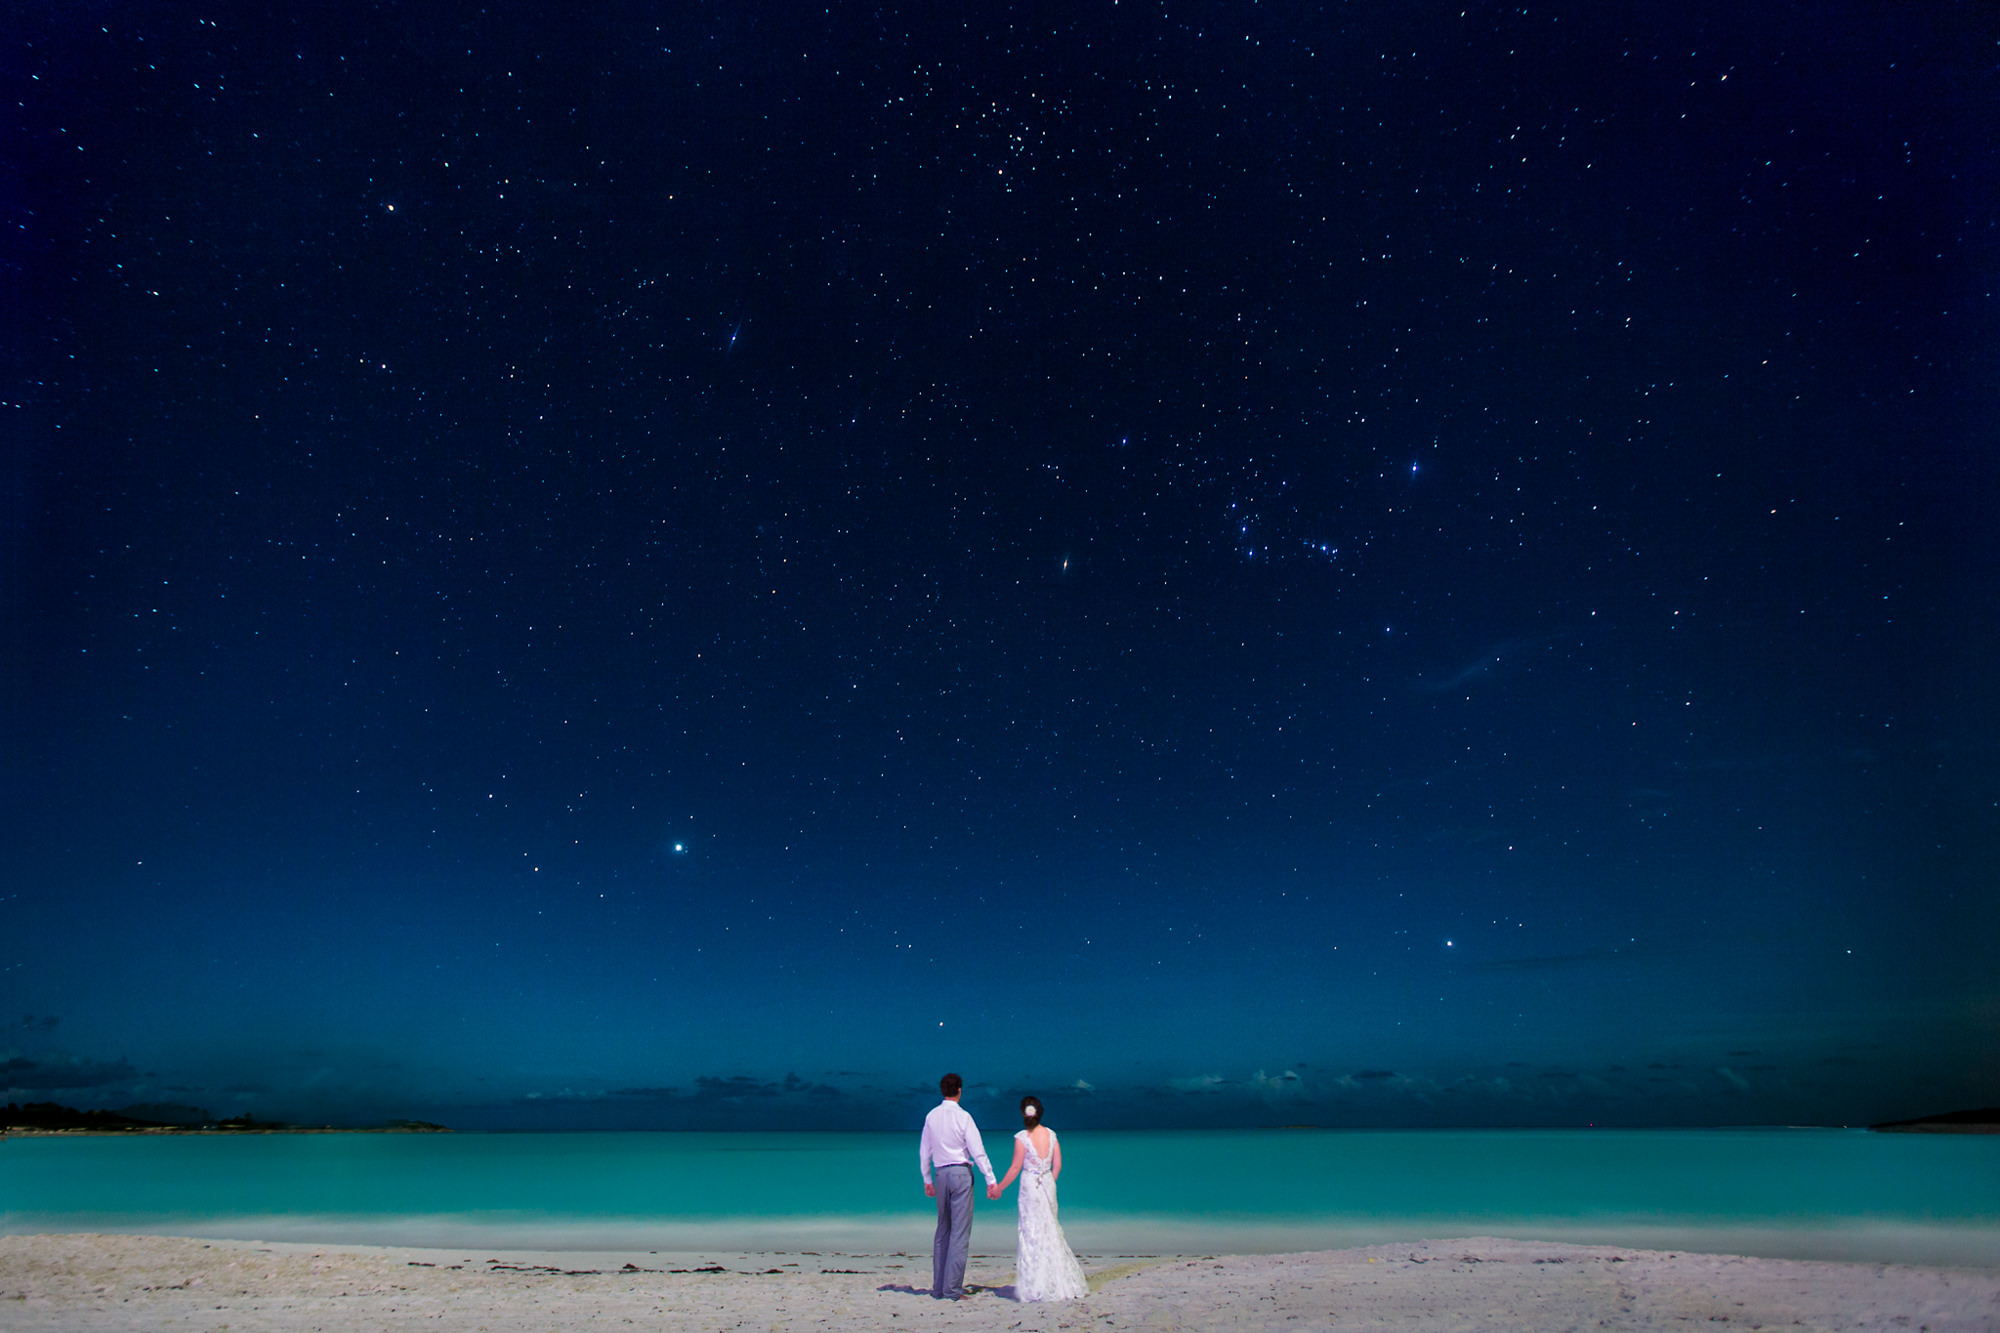 bride-and-groom-looks-out-at-the-stars-from-aqua-water-beach-worlds-best-wedding-photos-two-mann-studio-canada